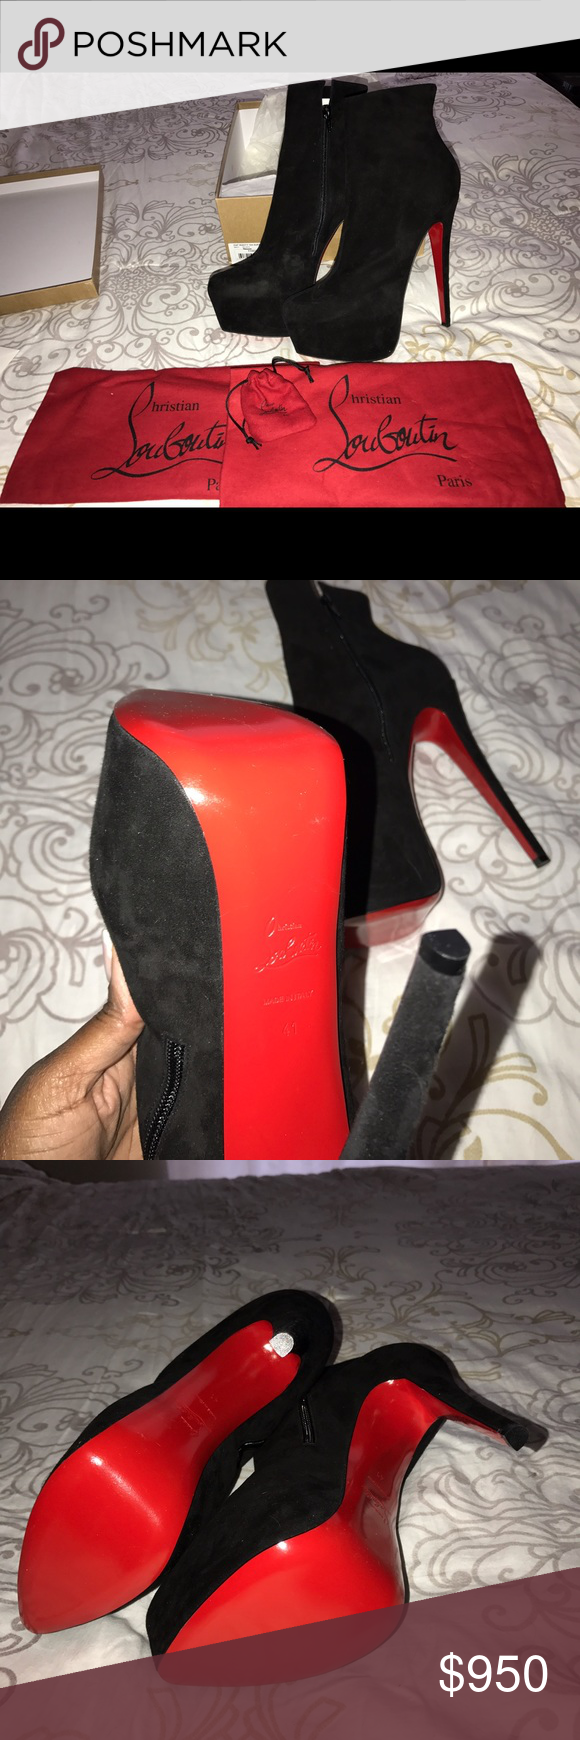 Daff Booties Size 41 (US size 10) new in box, never worn!! Retail for $1500. MAKE ME AN OFFER!! Guaranteed authentic!! Christian Louboutin Shoes Ankle Boots & Booties